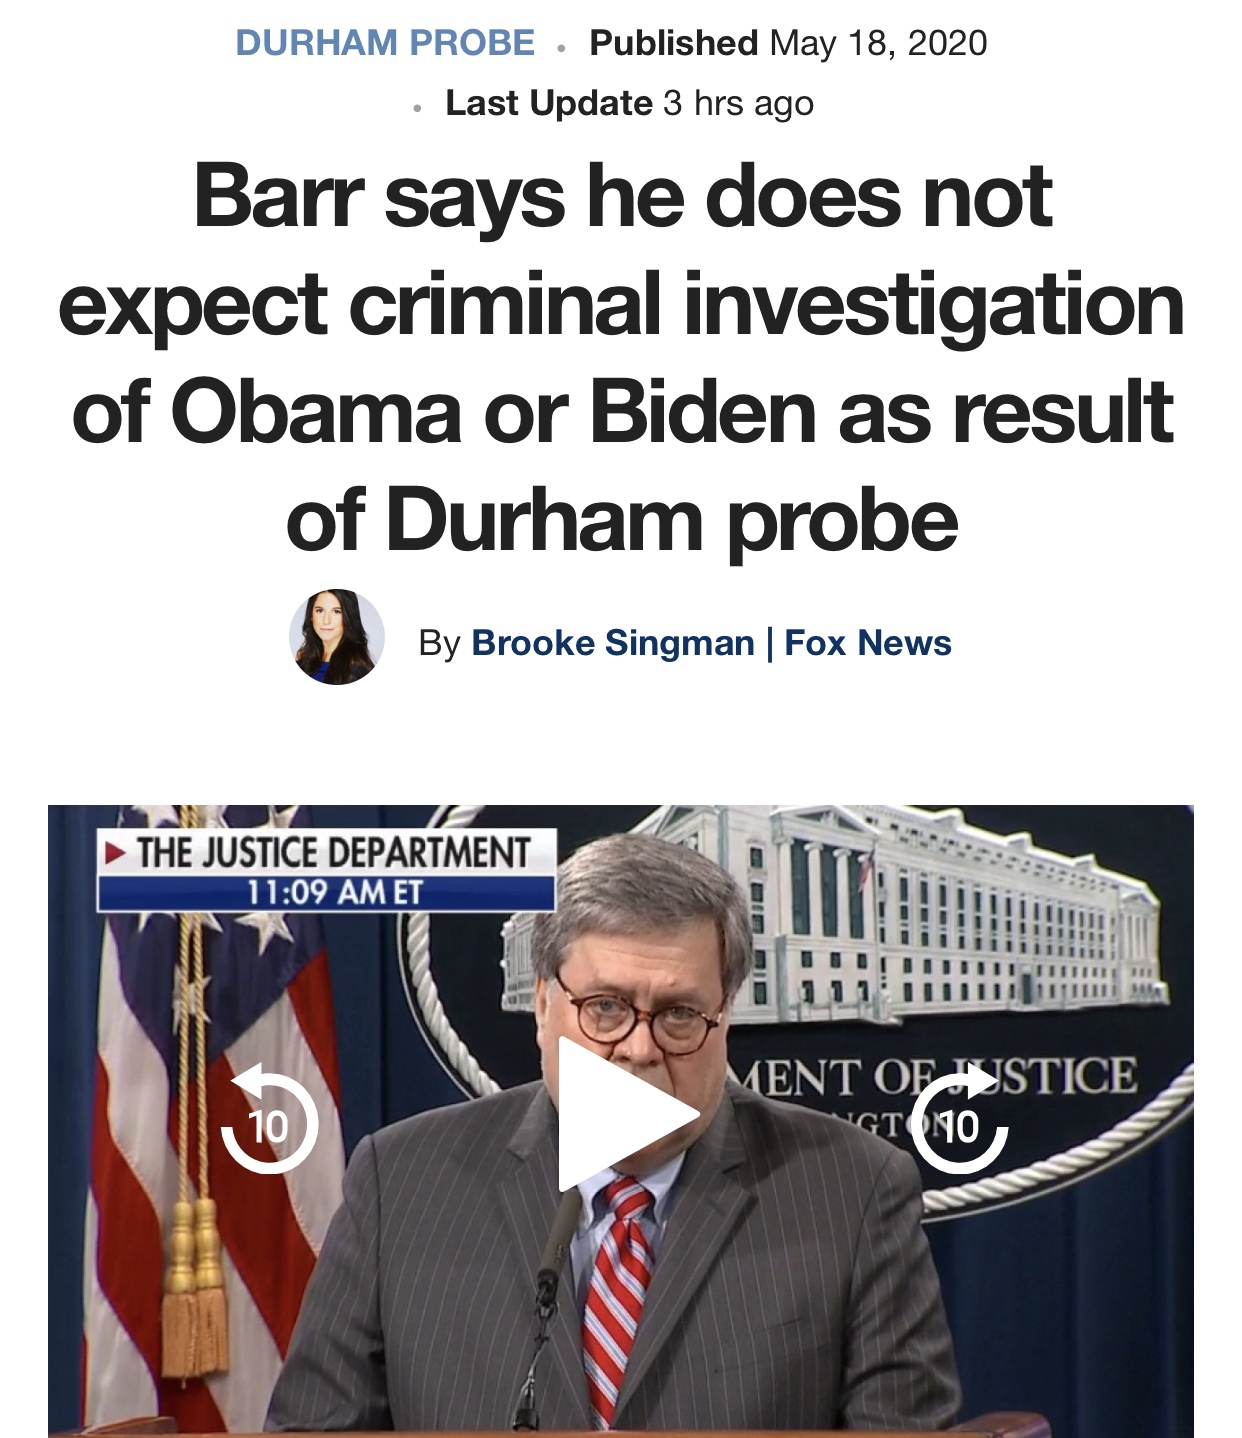 AG Barr says he does not expect criminal investigation of Obama or Biden as result of Durham probe